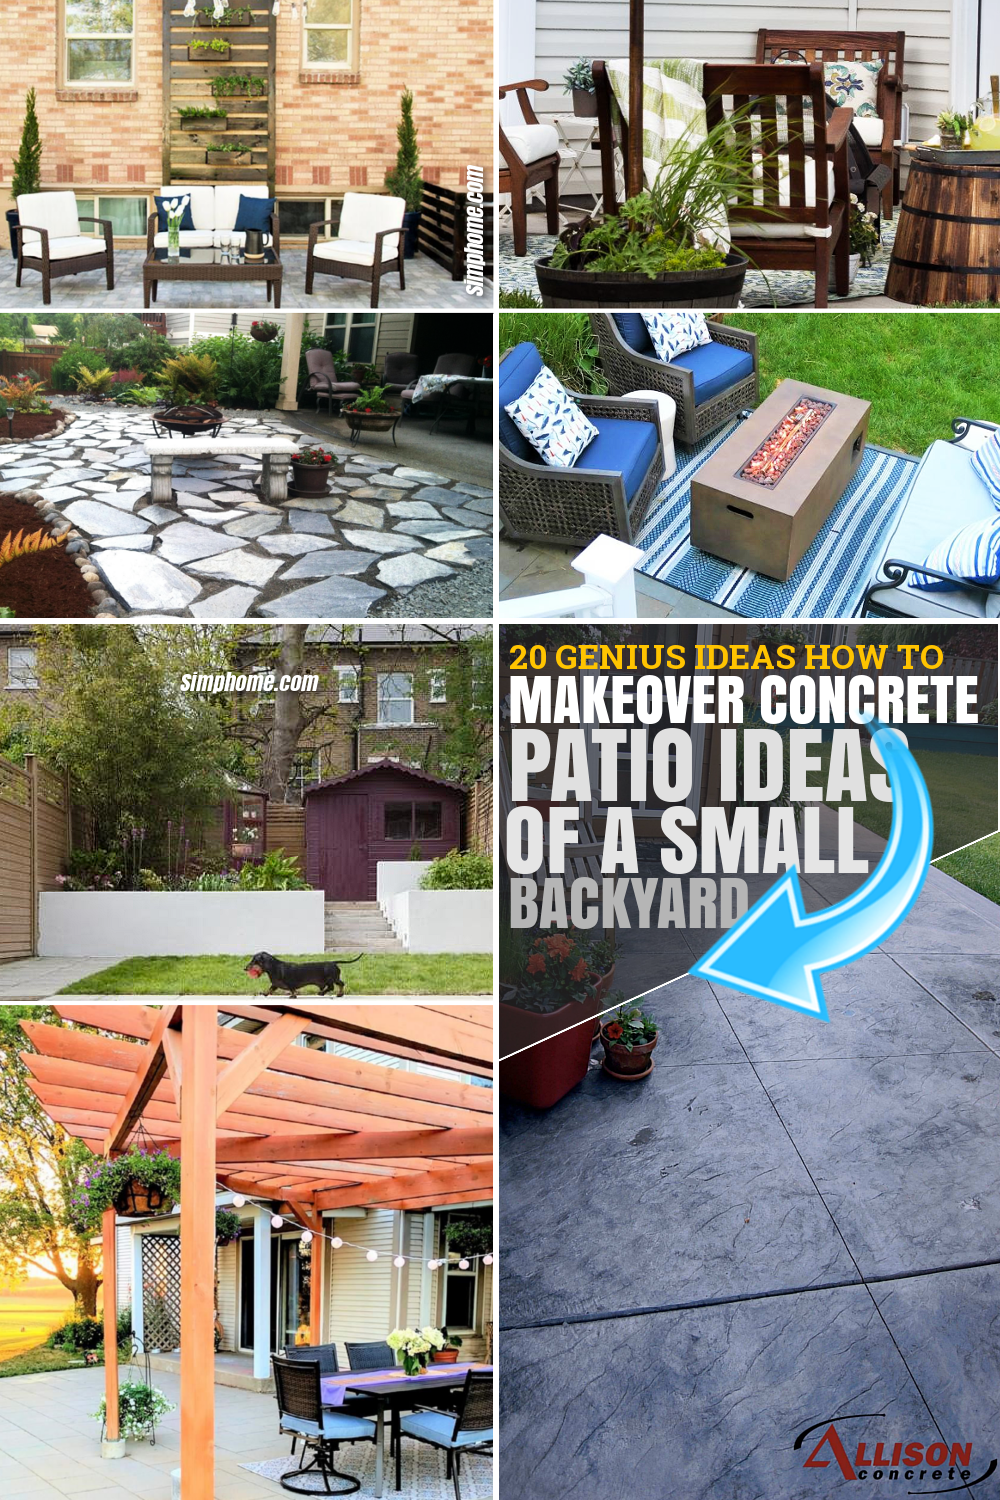 SIMPHOME.COM 20 IDEAS How to Make Concrete Patio Ideas for Small Backyards